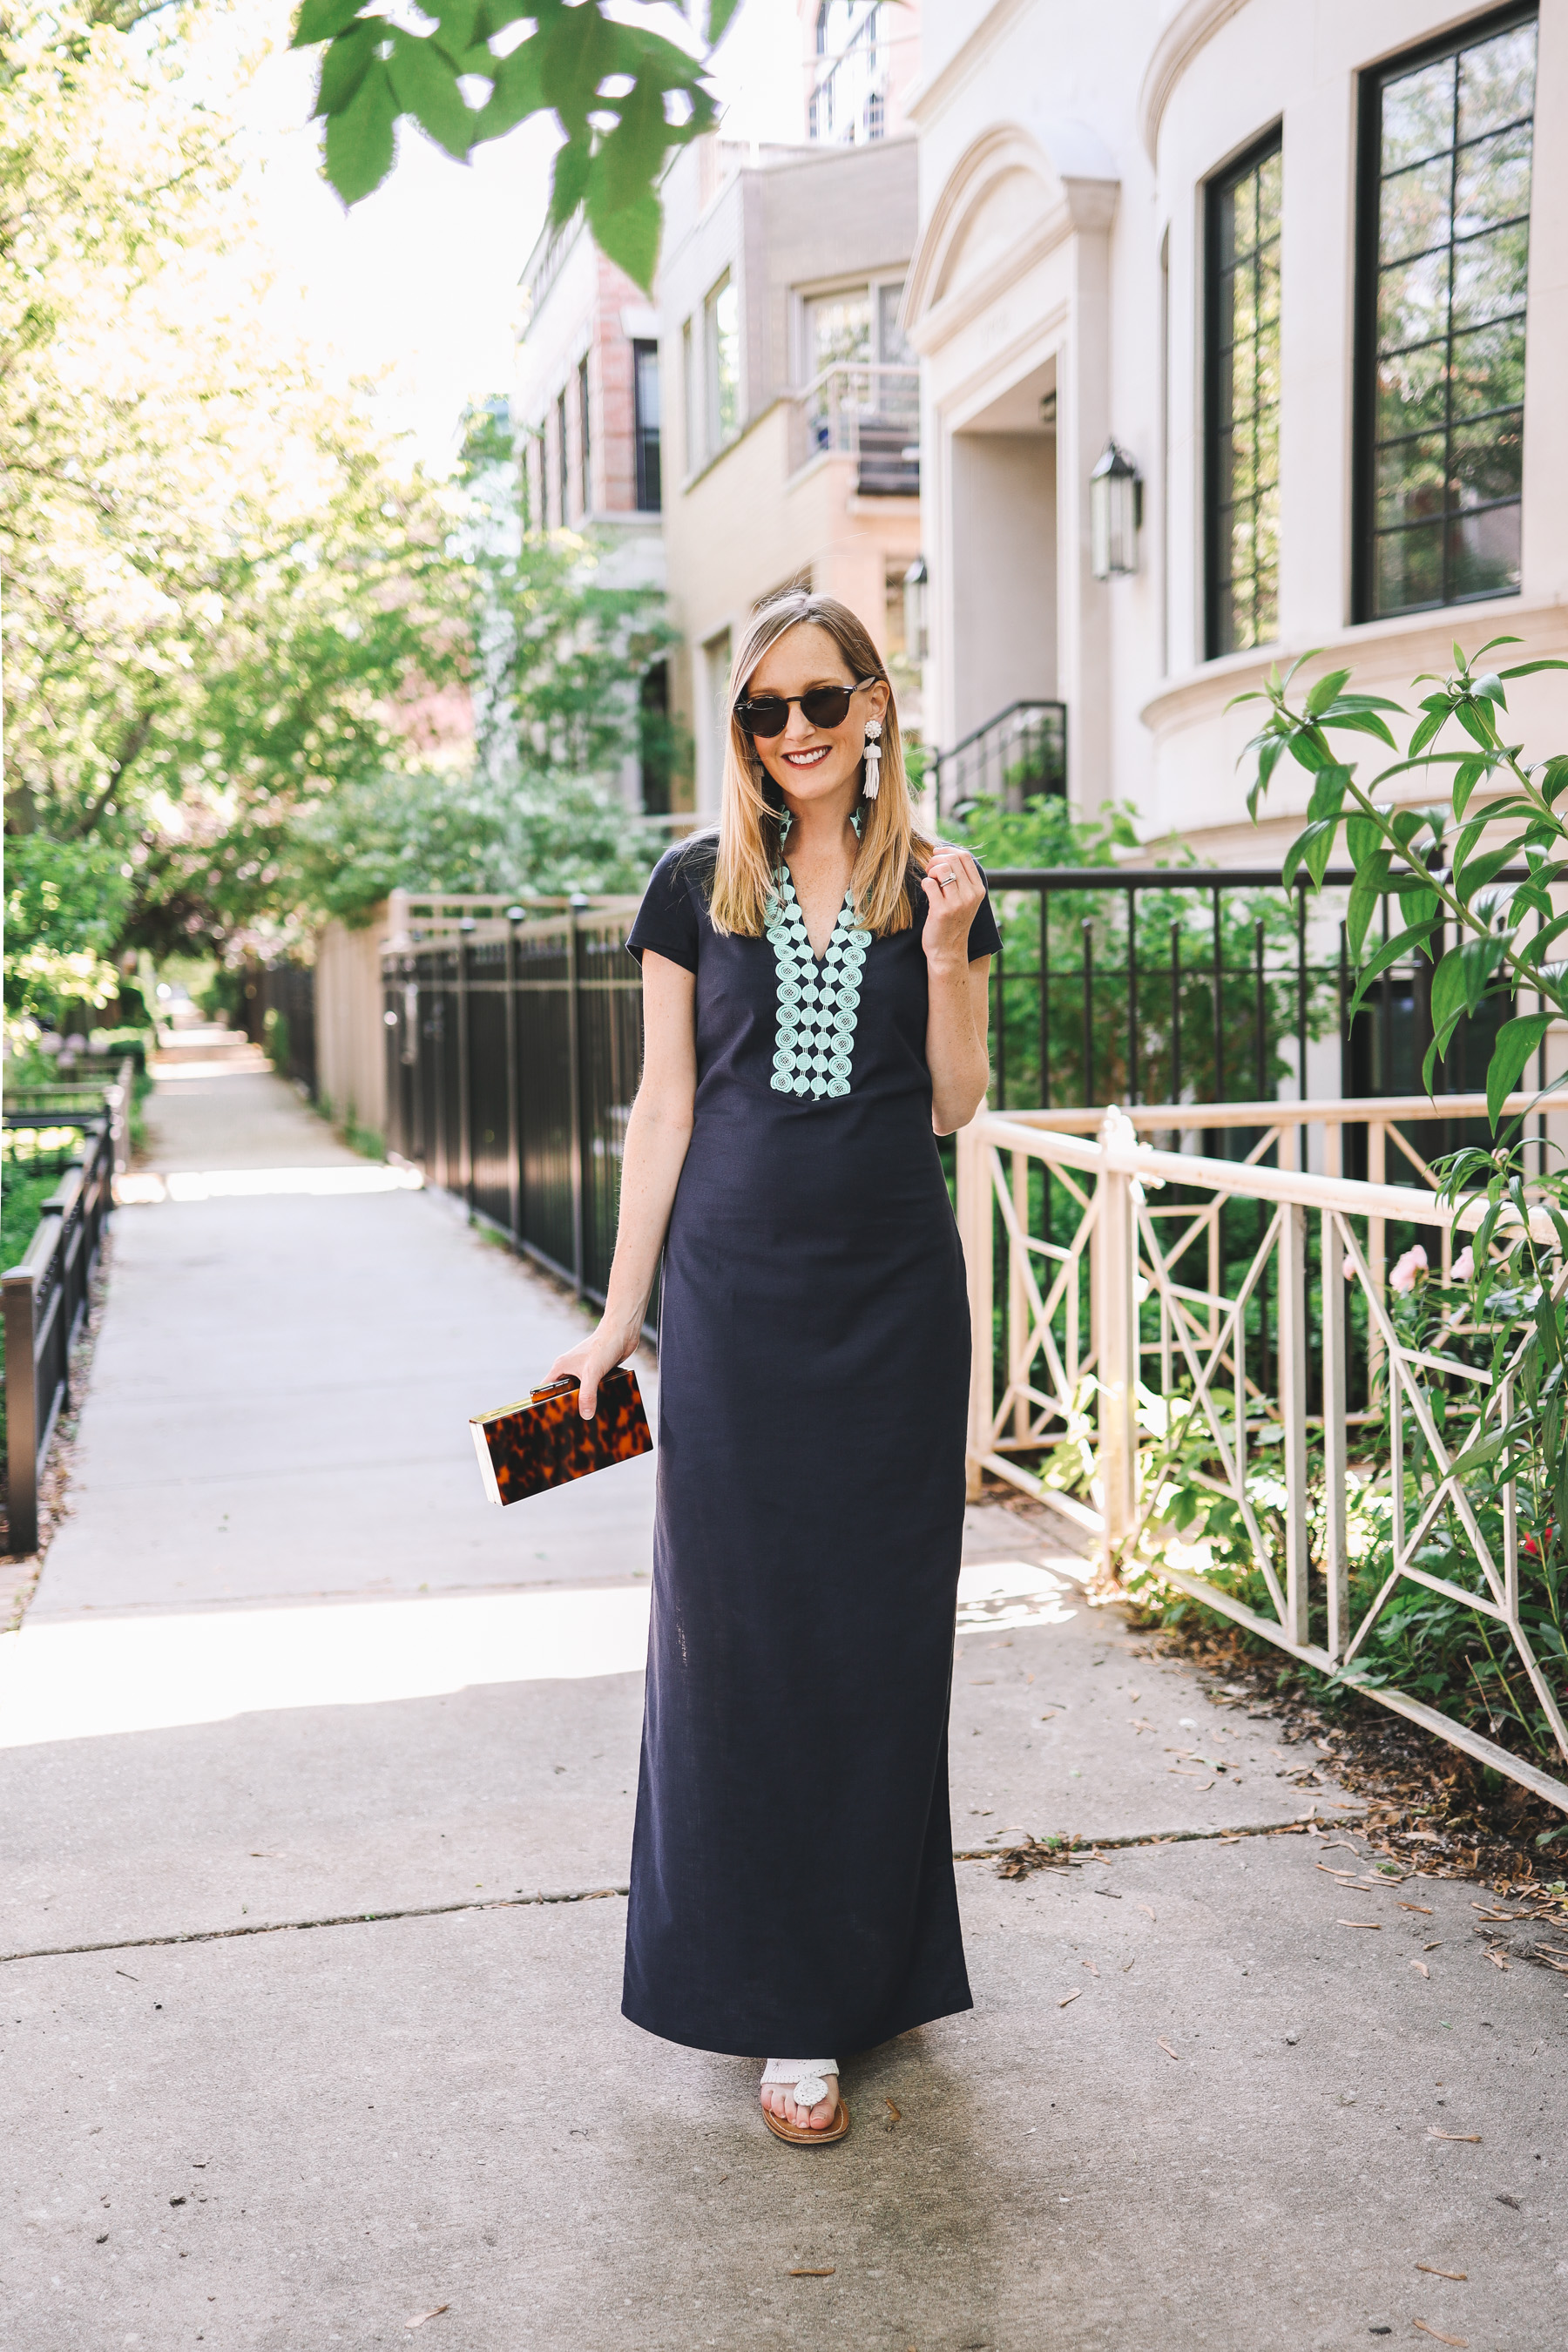 Kelly Larkin is wearing a Sail to Sable maxi dress